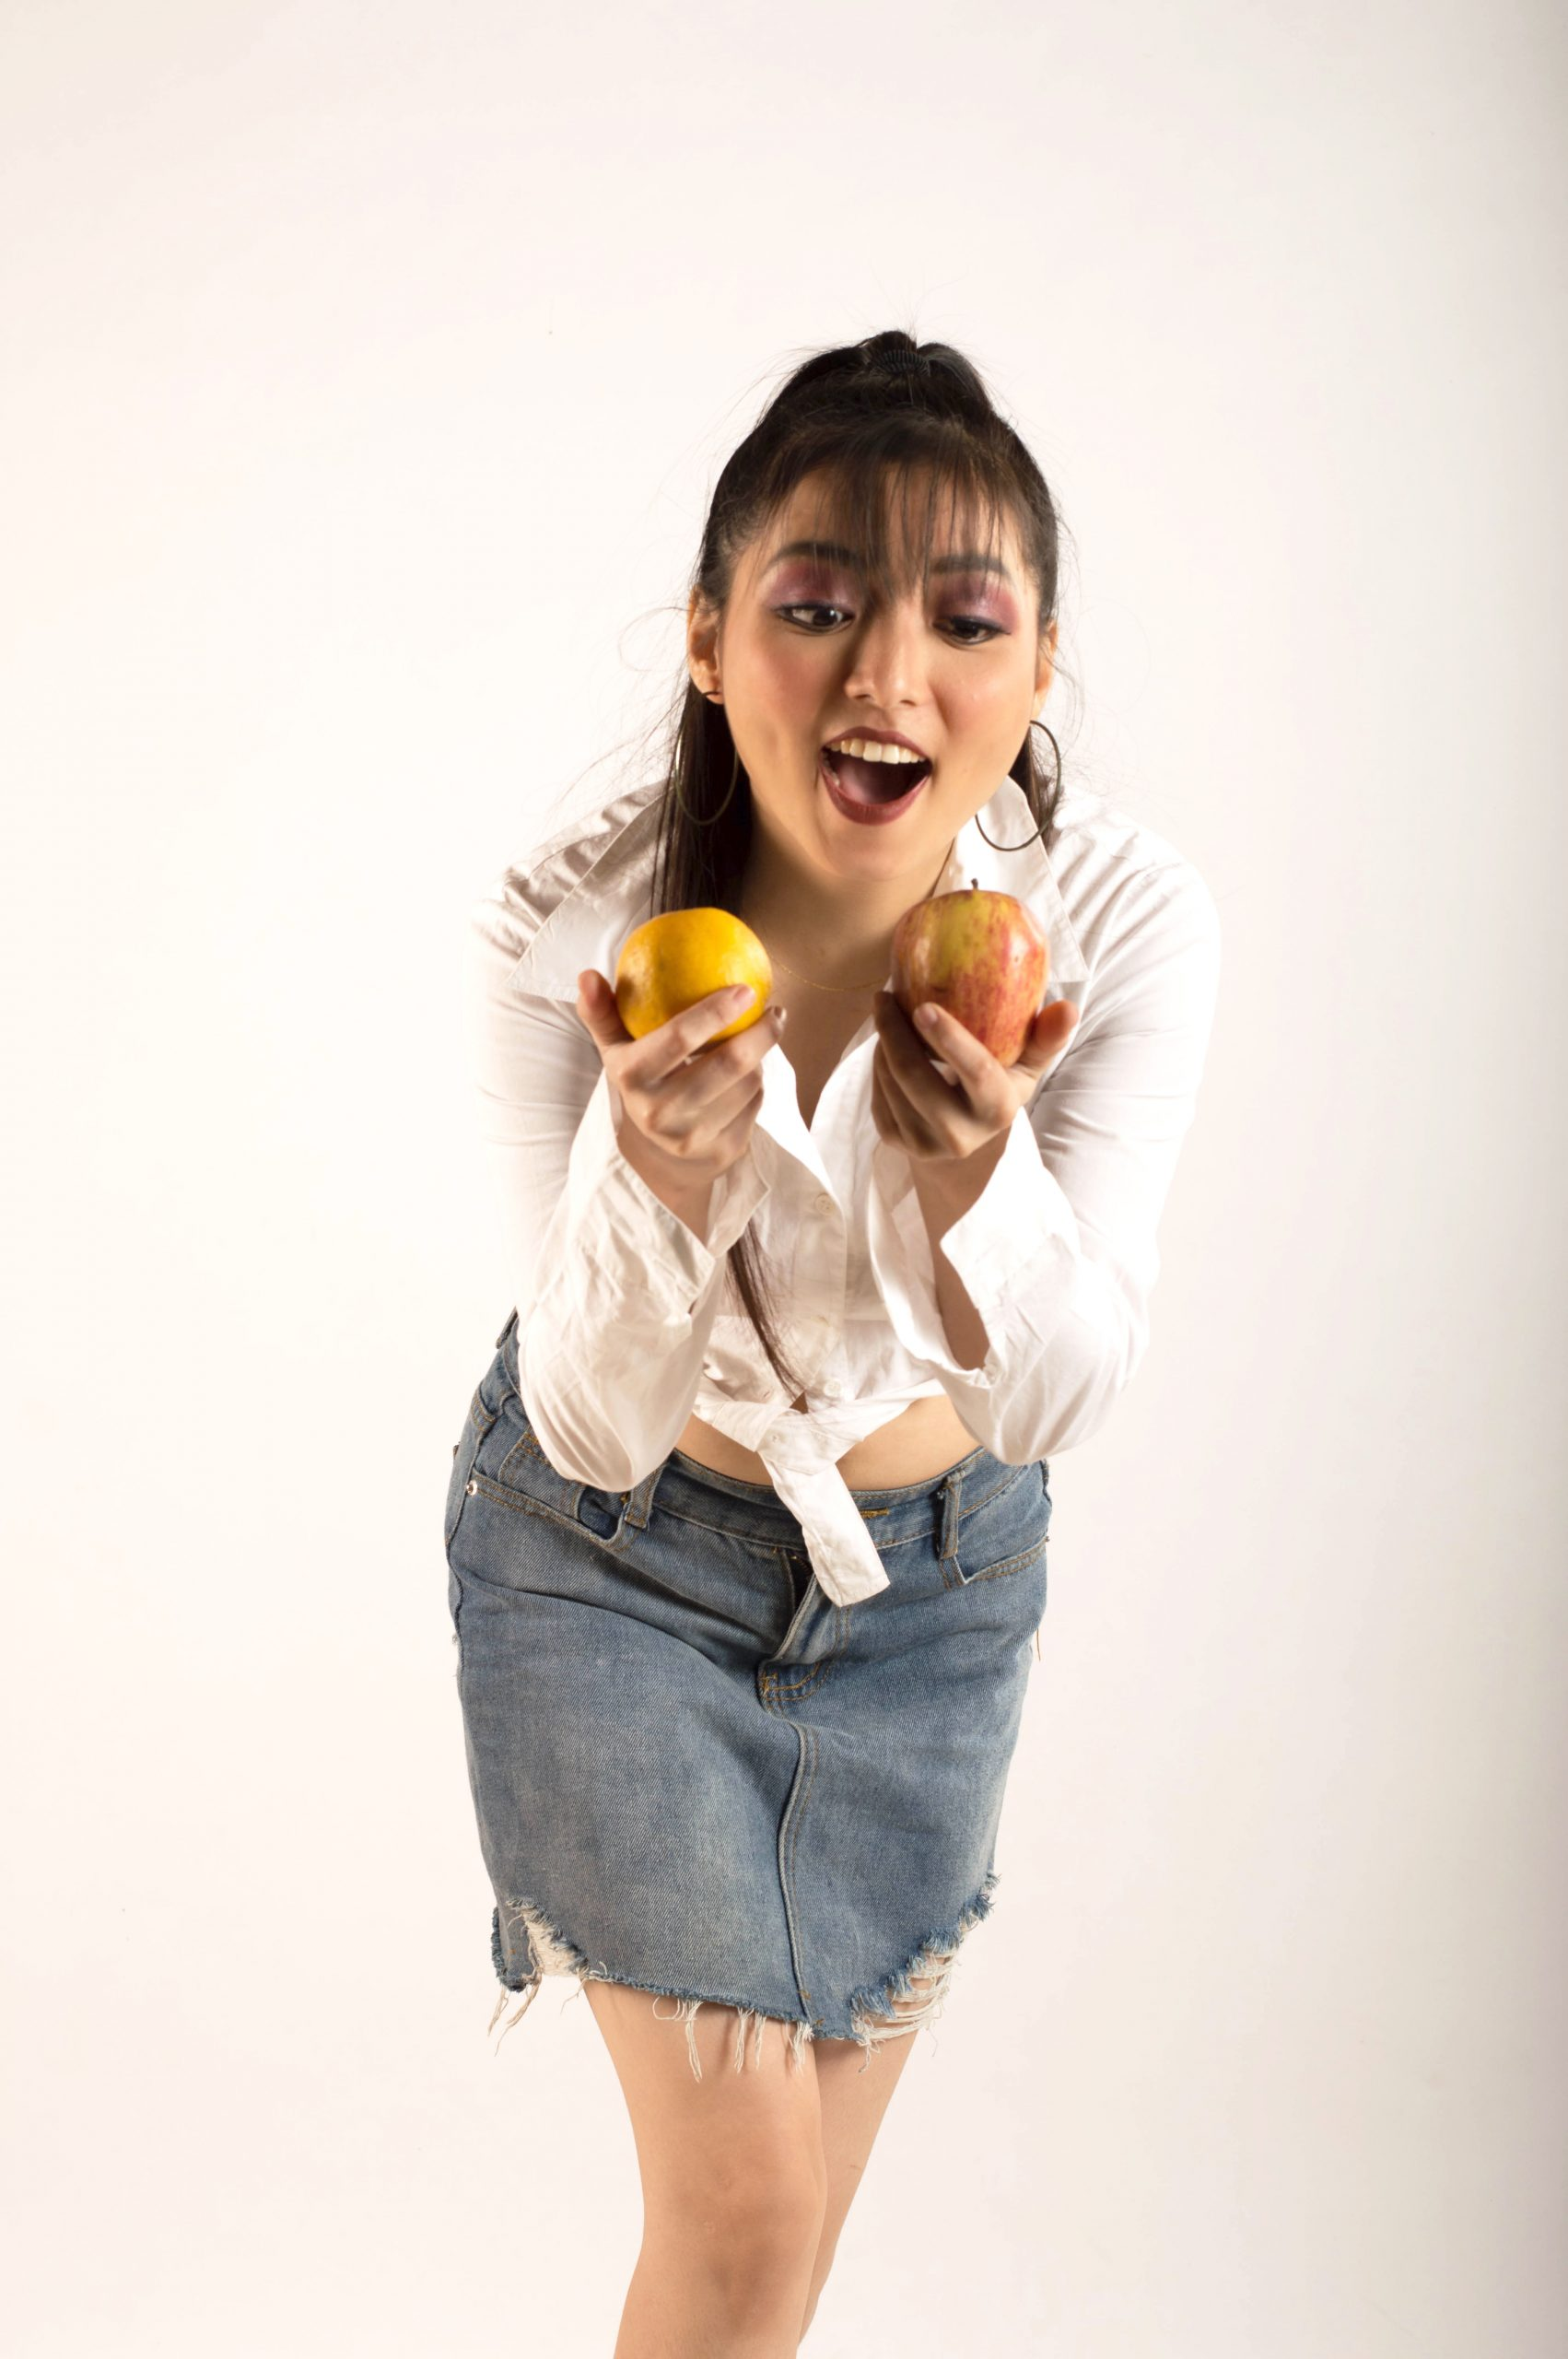 Girl having fun with fruits